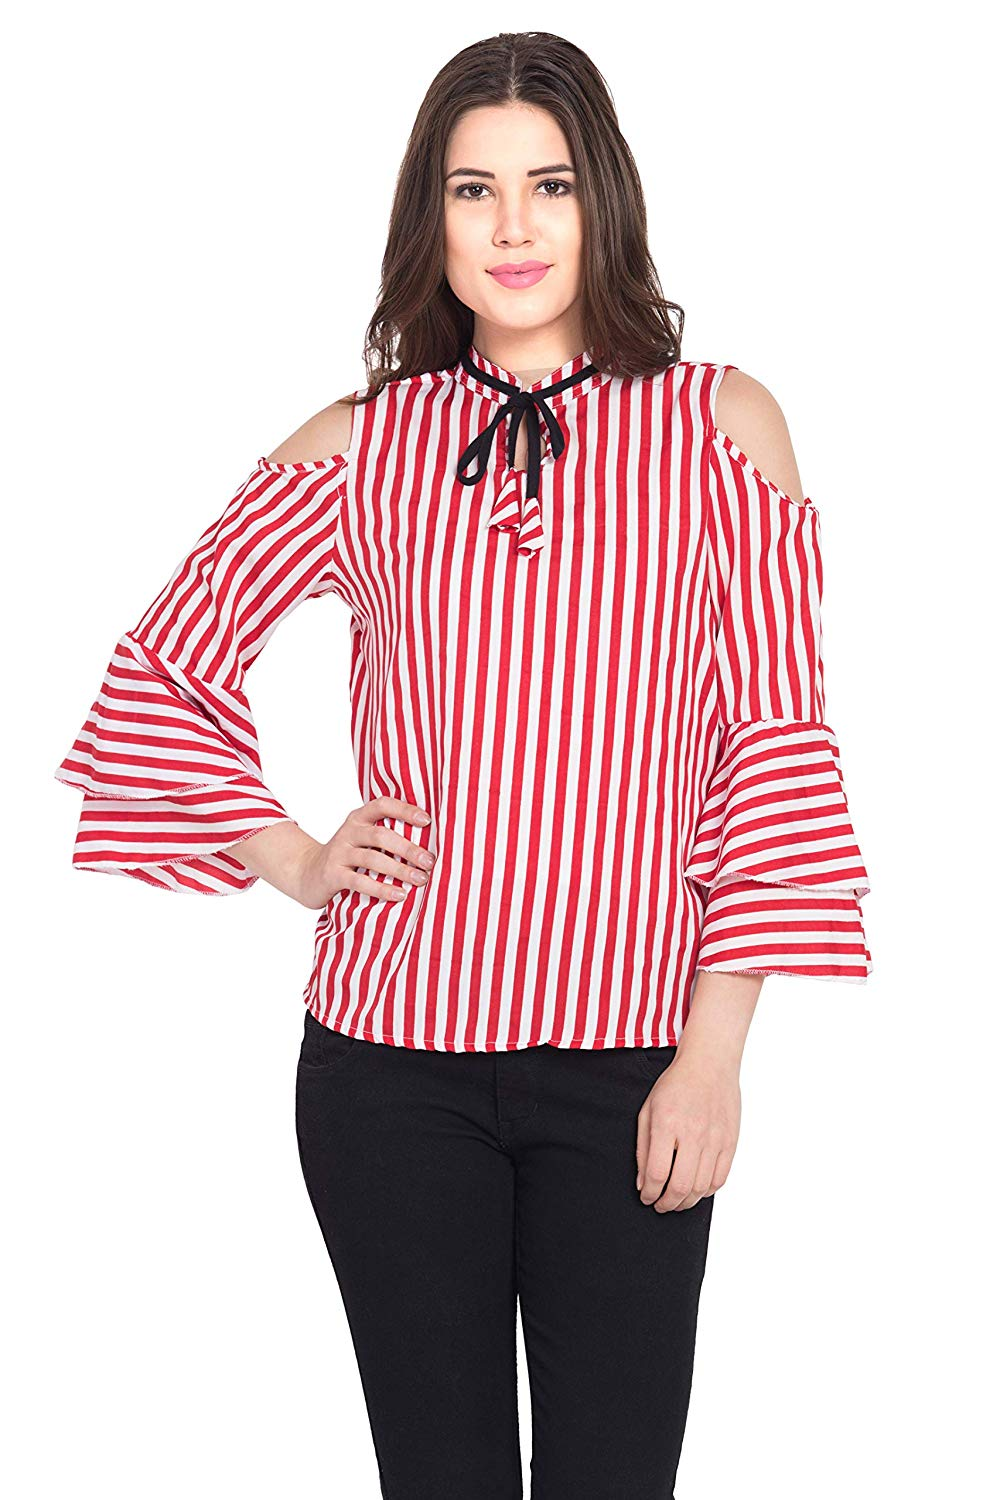 Trendey Tiska Casual Layered Sleeve Striped Women Red Top